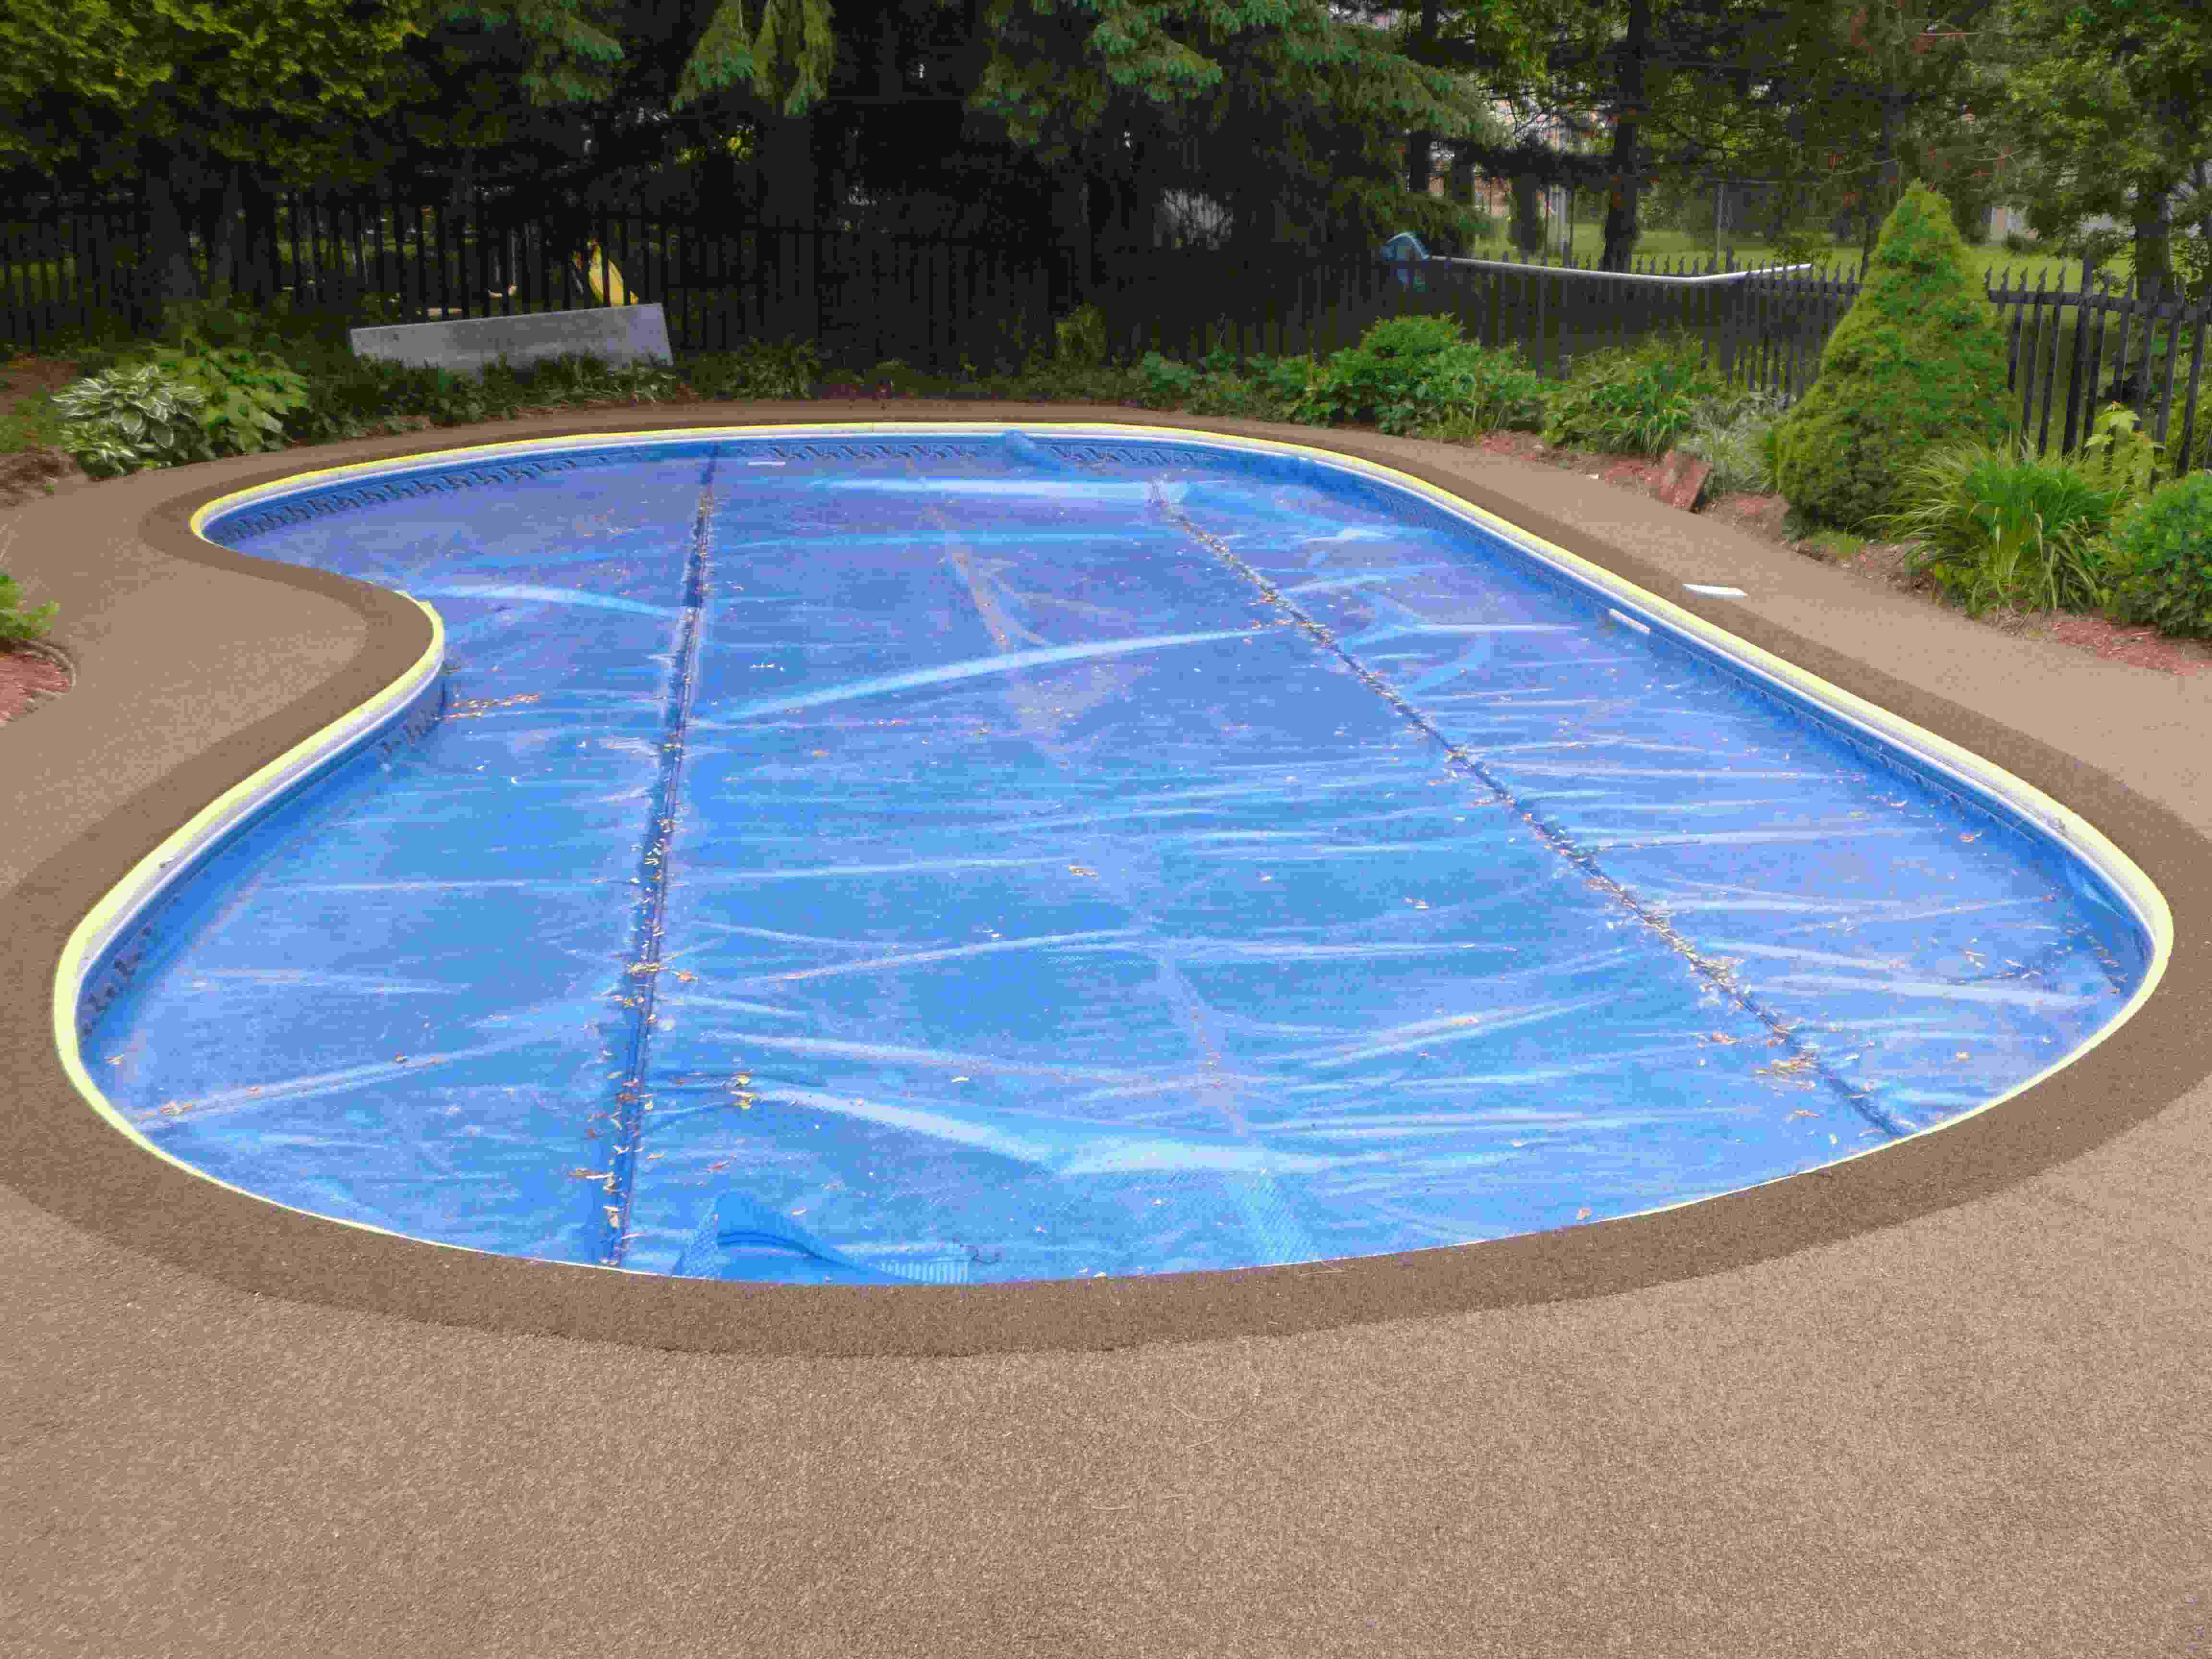 Check out the creative designs porous pave allows for Swimming pool design xls